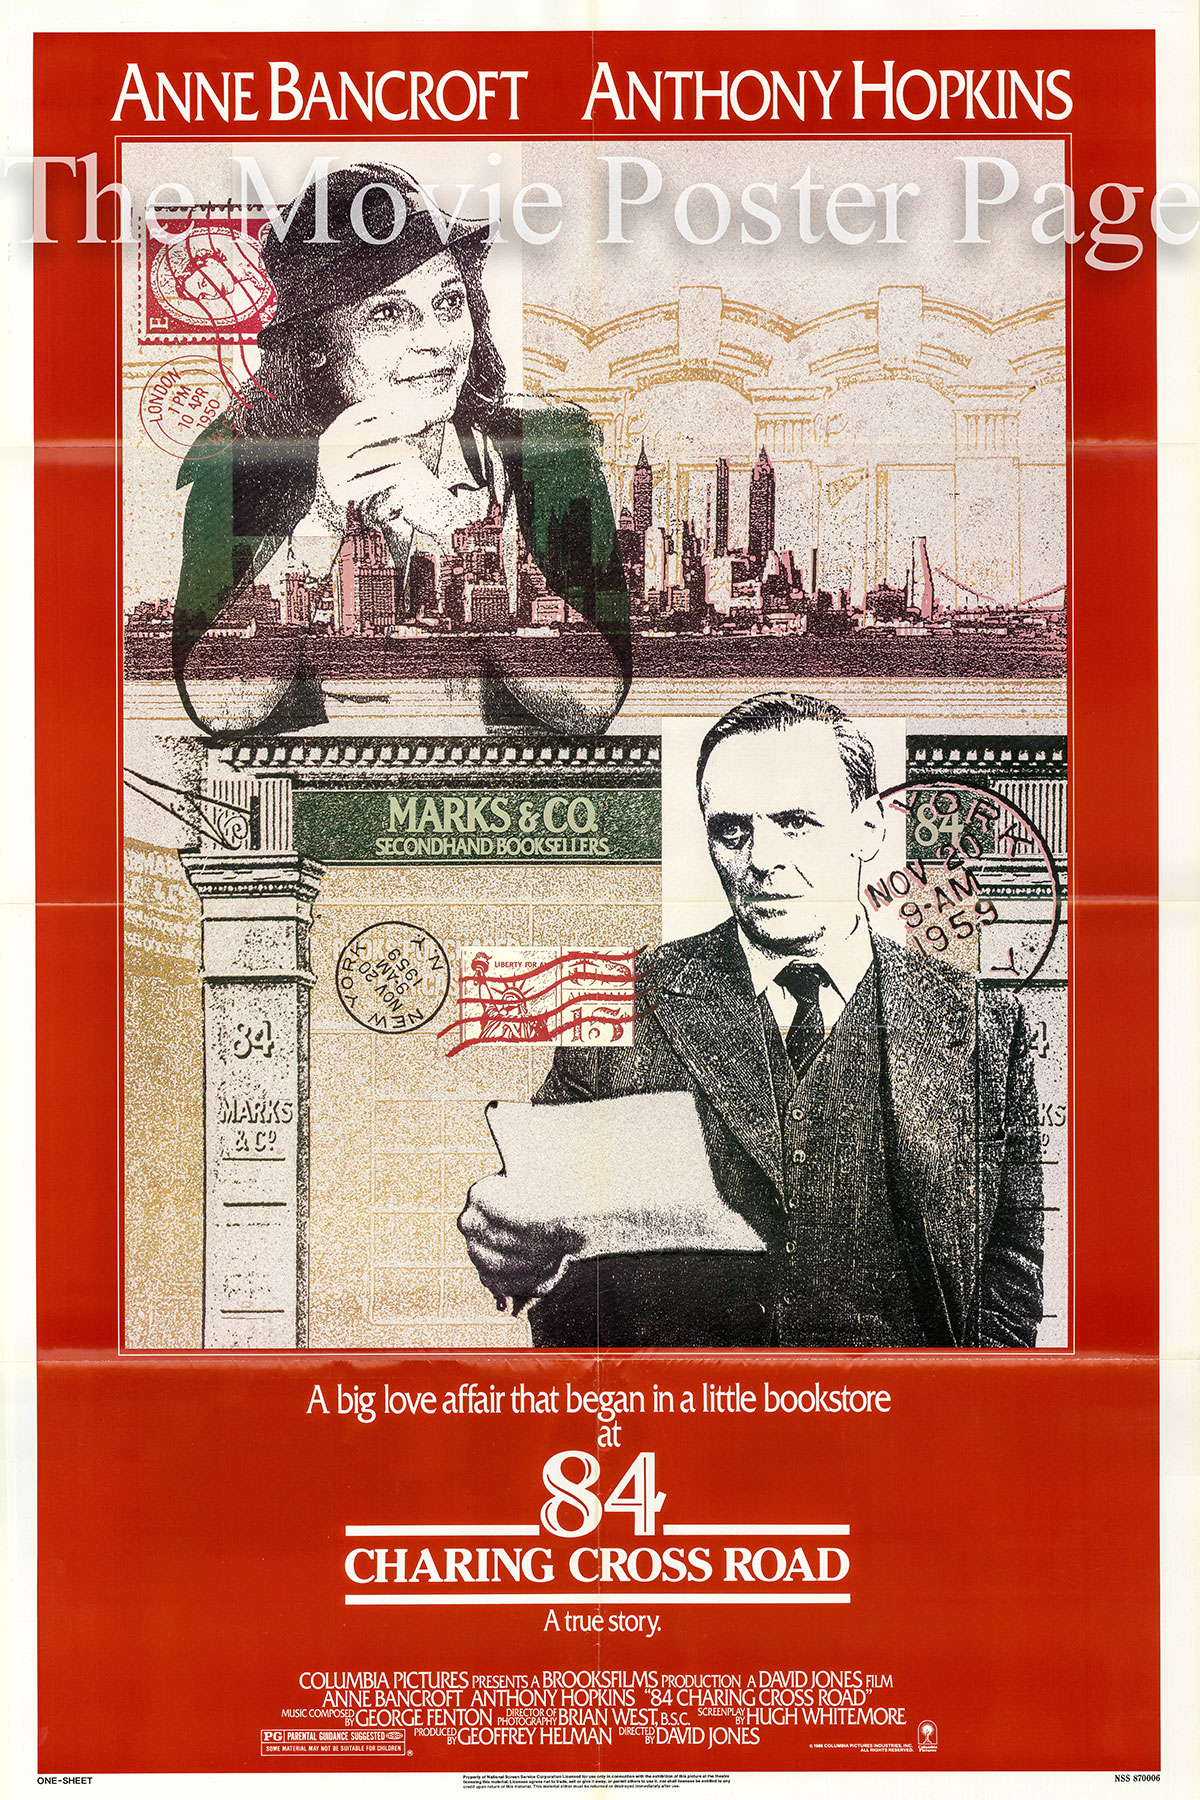 PIctured is a US one-sheet poster for the 1987 David Jones film 84 Charing Cross Road starring Anthony Hopkins.